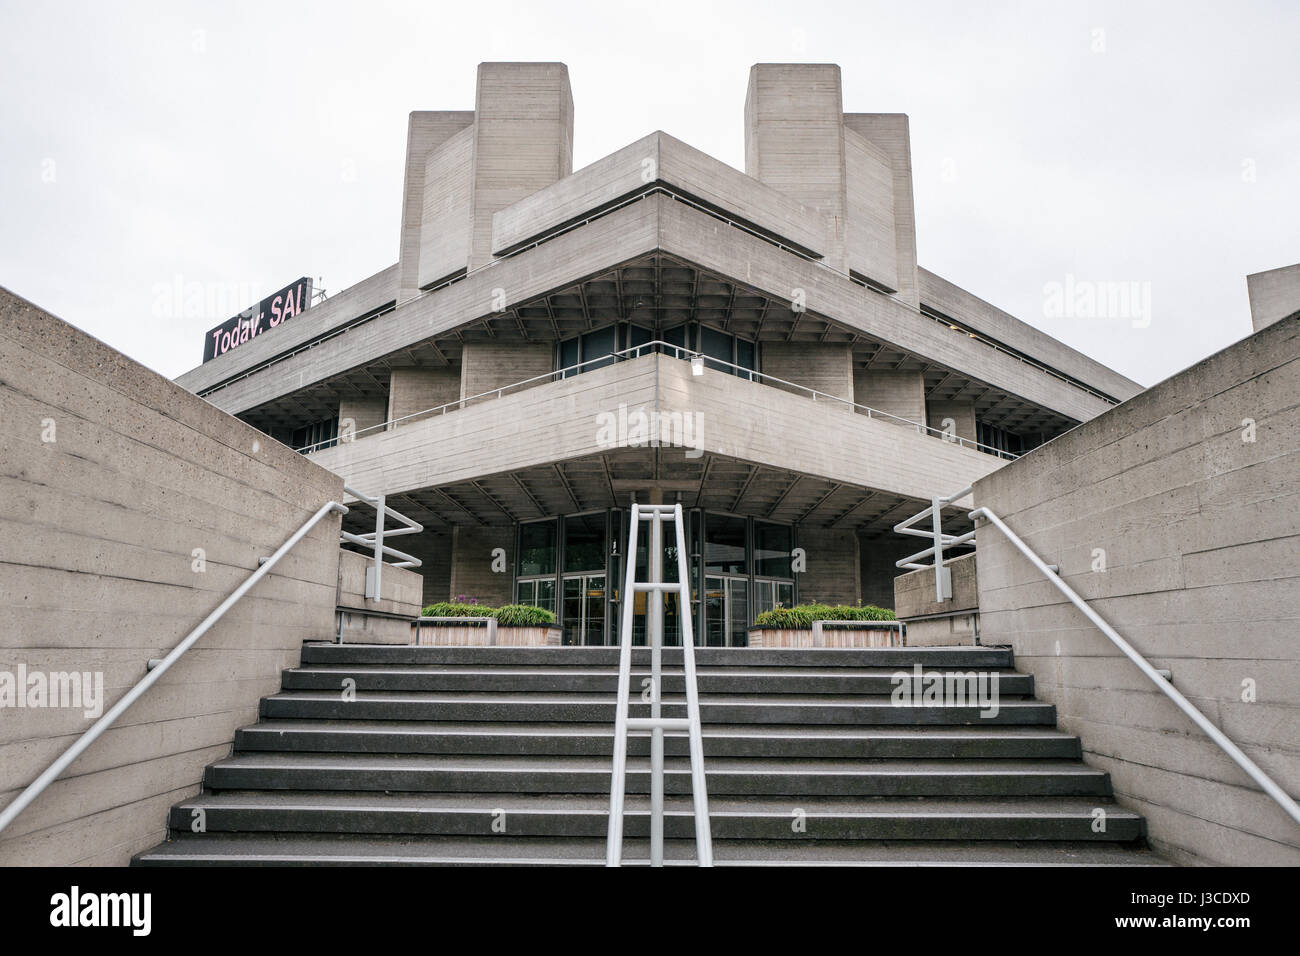 The National Theatre of Great Britain at the Southbank Centre, London. Designed by Denys Lasdun, the building is - Stock Image